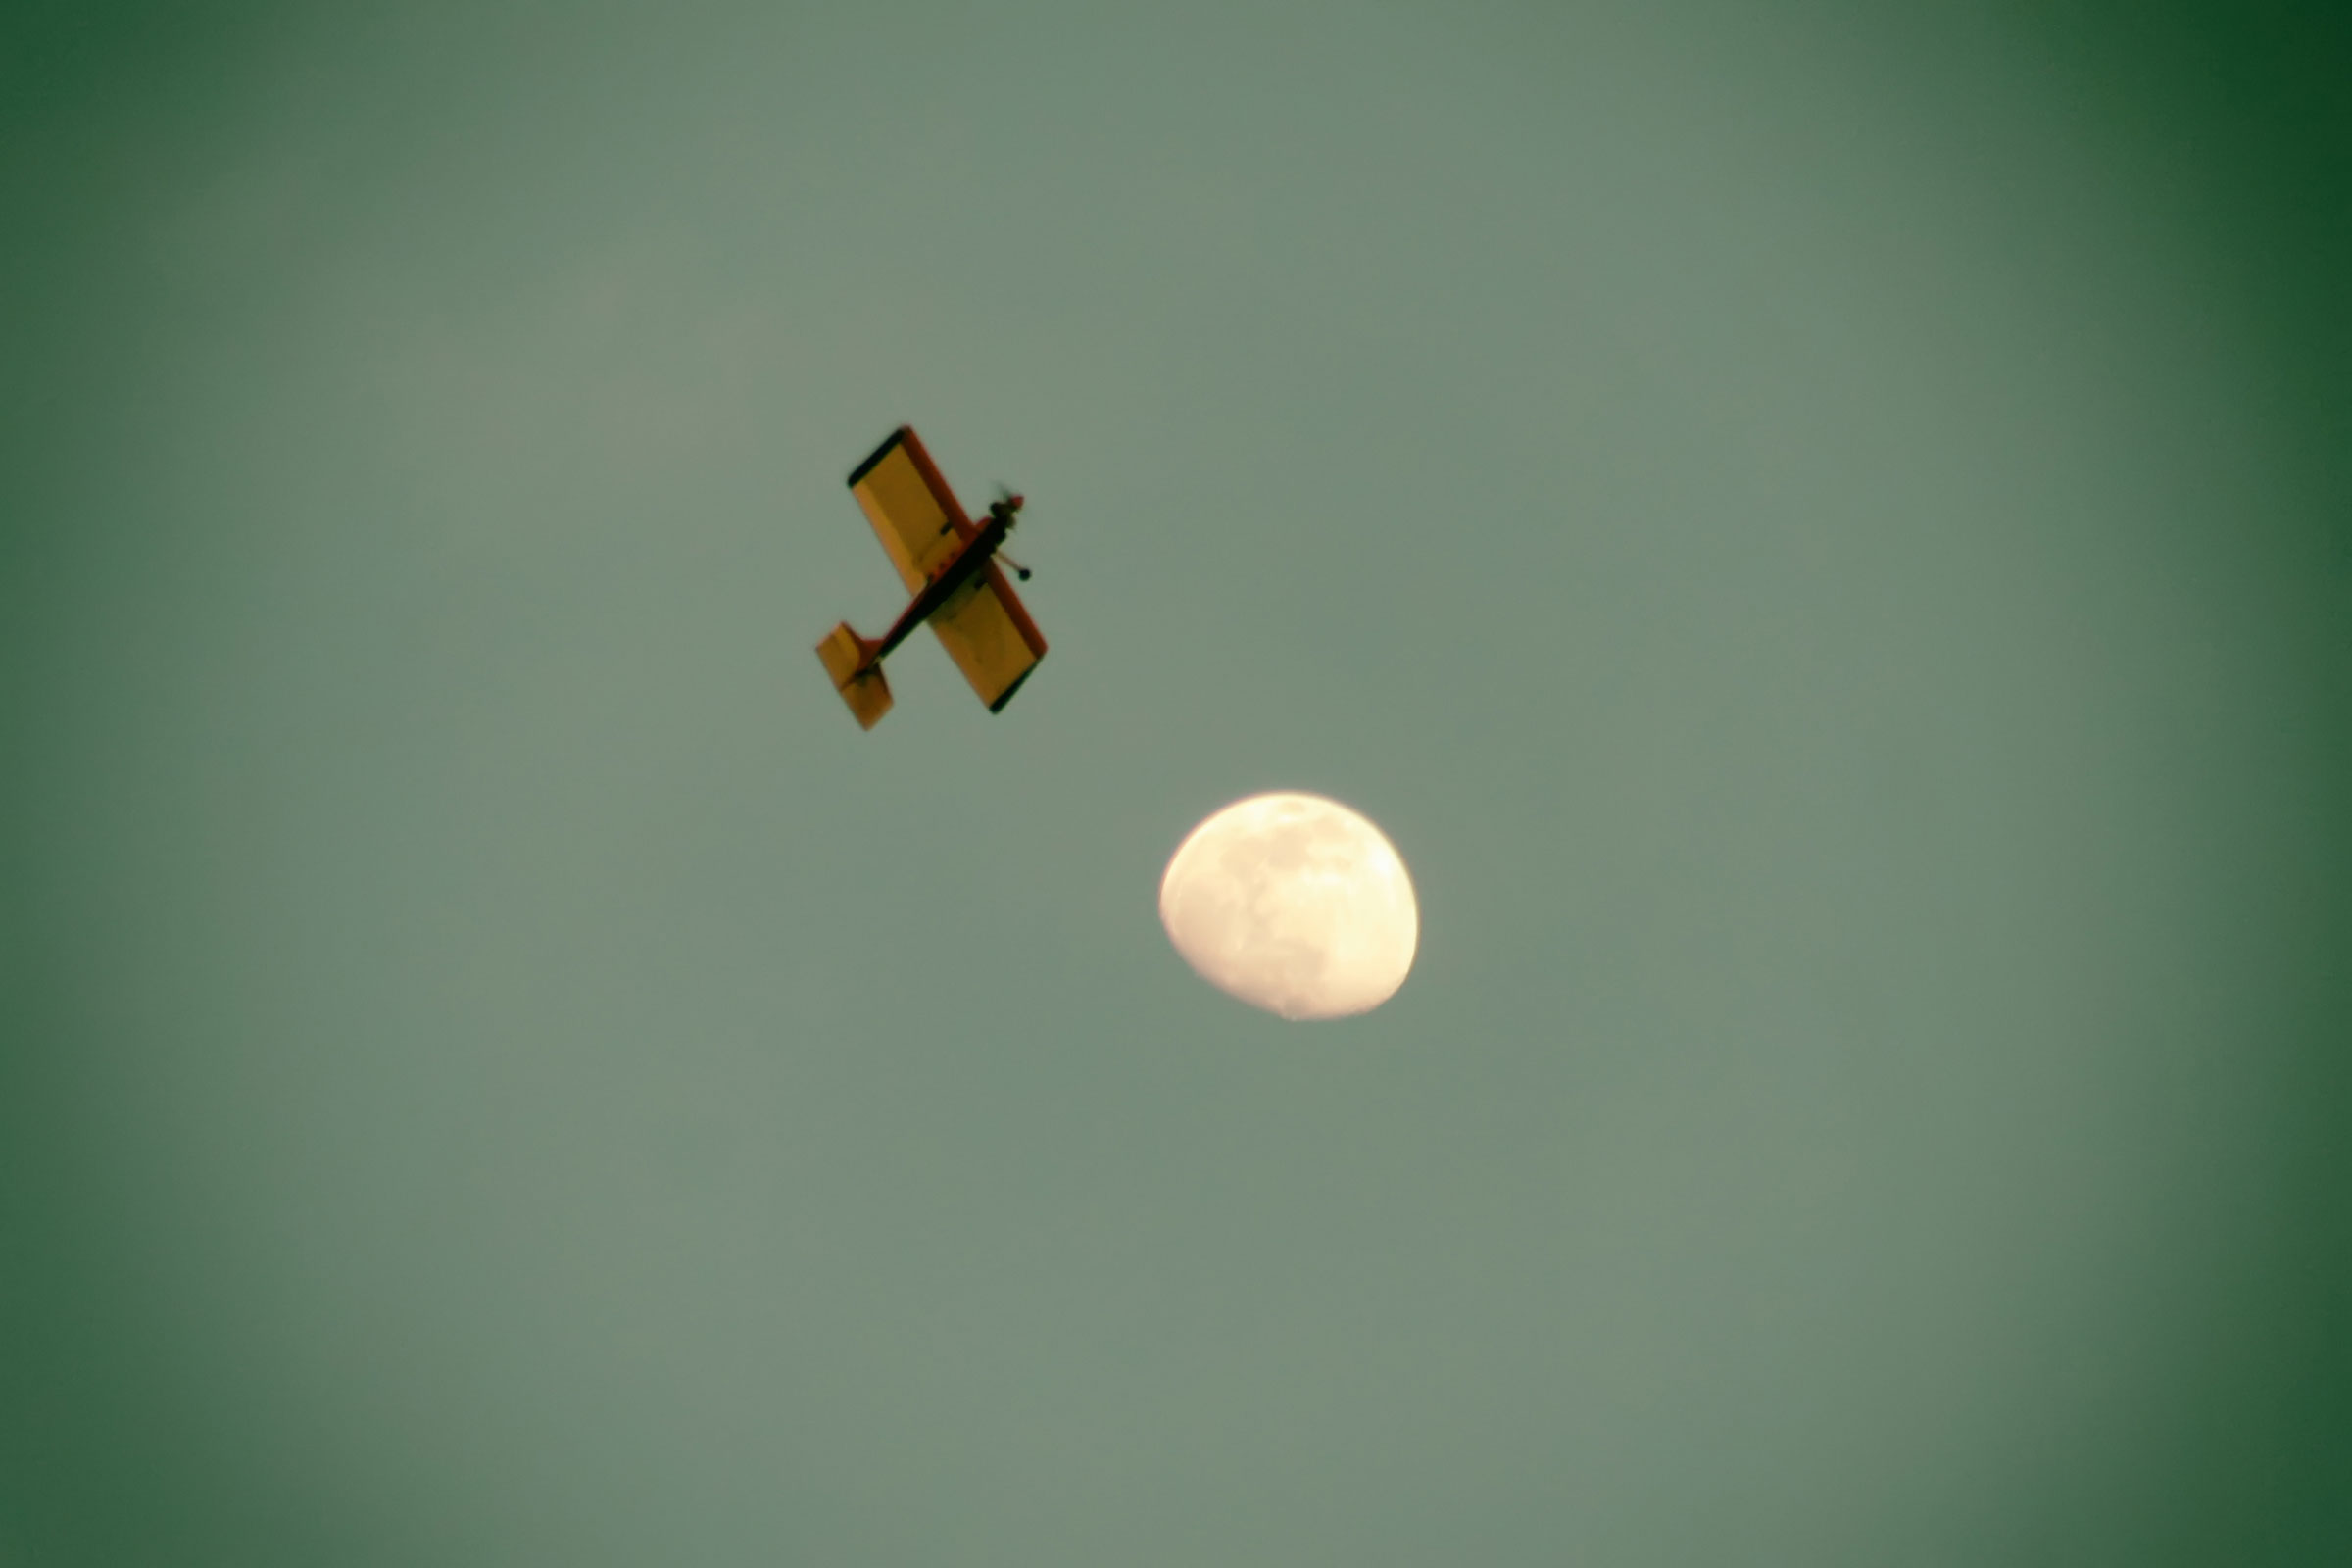 Flying to the moon photo